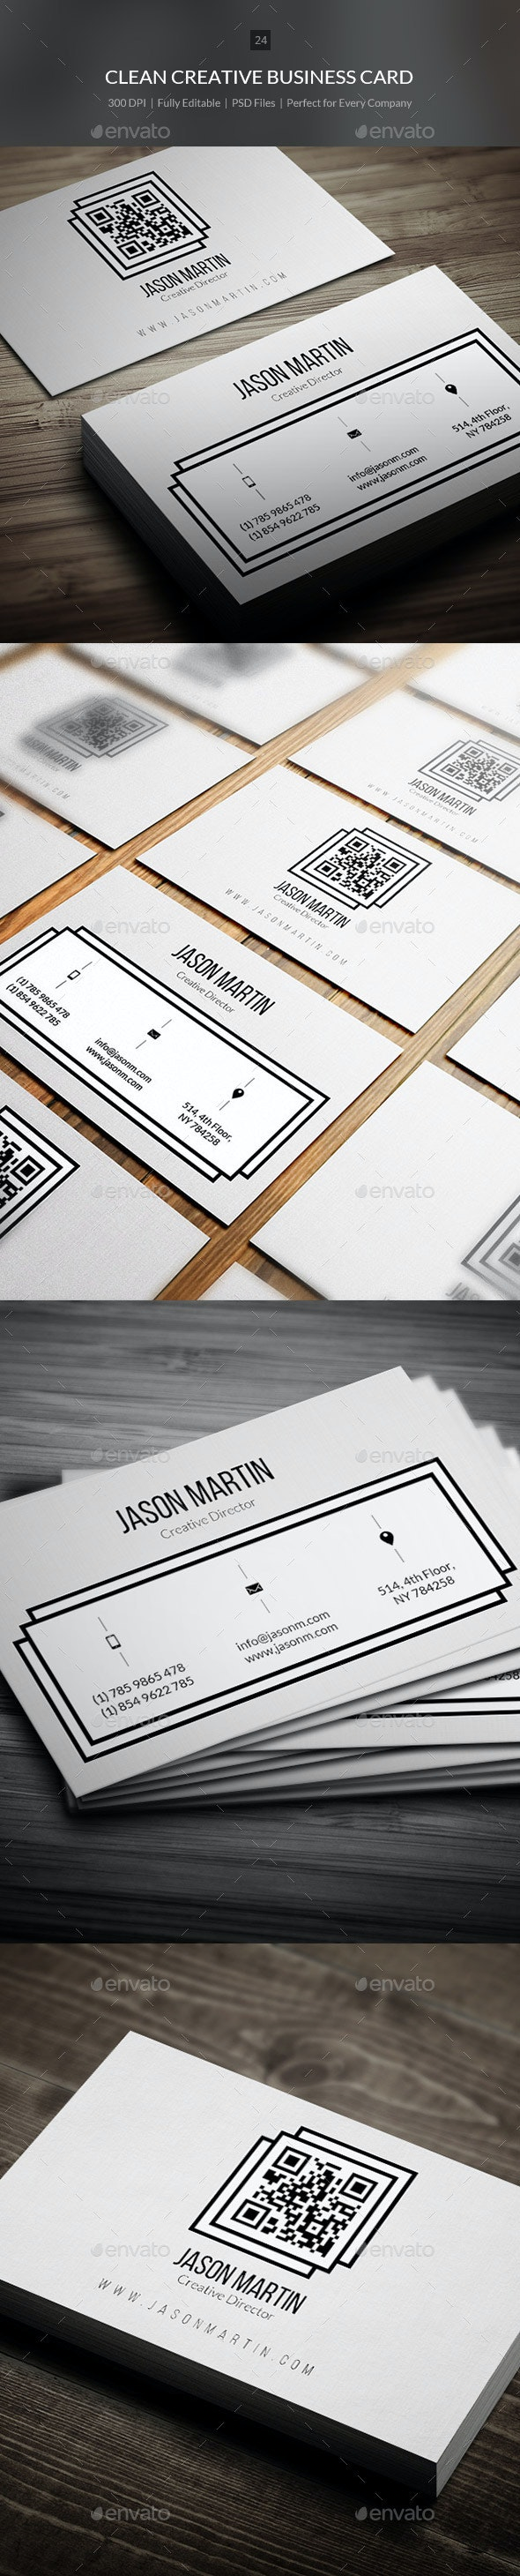 Clean Creative Business Card - 24 - Creative Business Cards